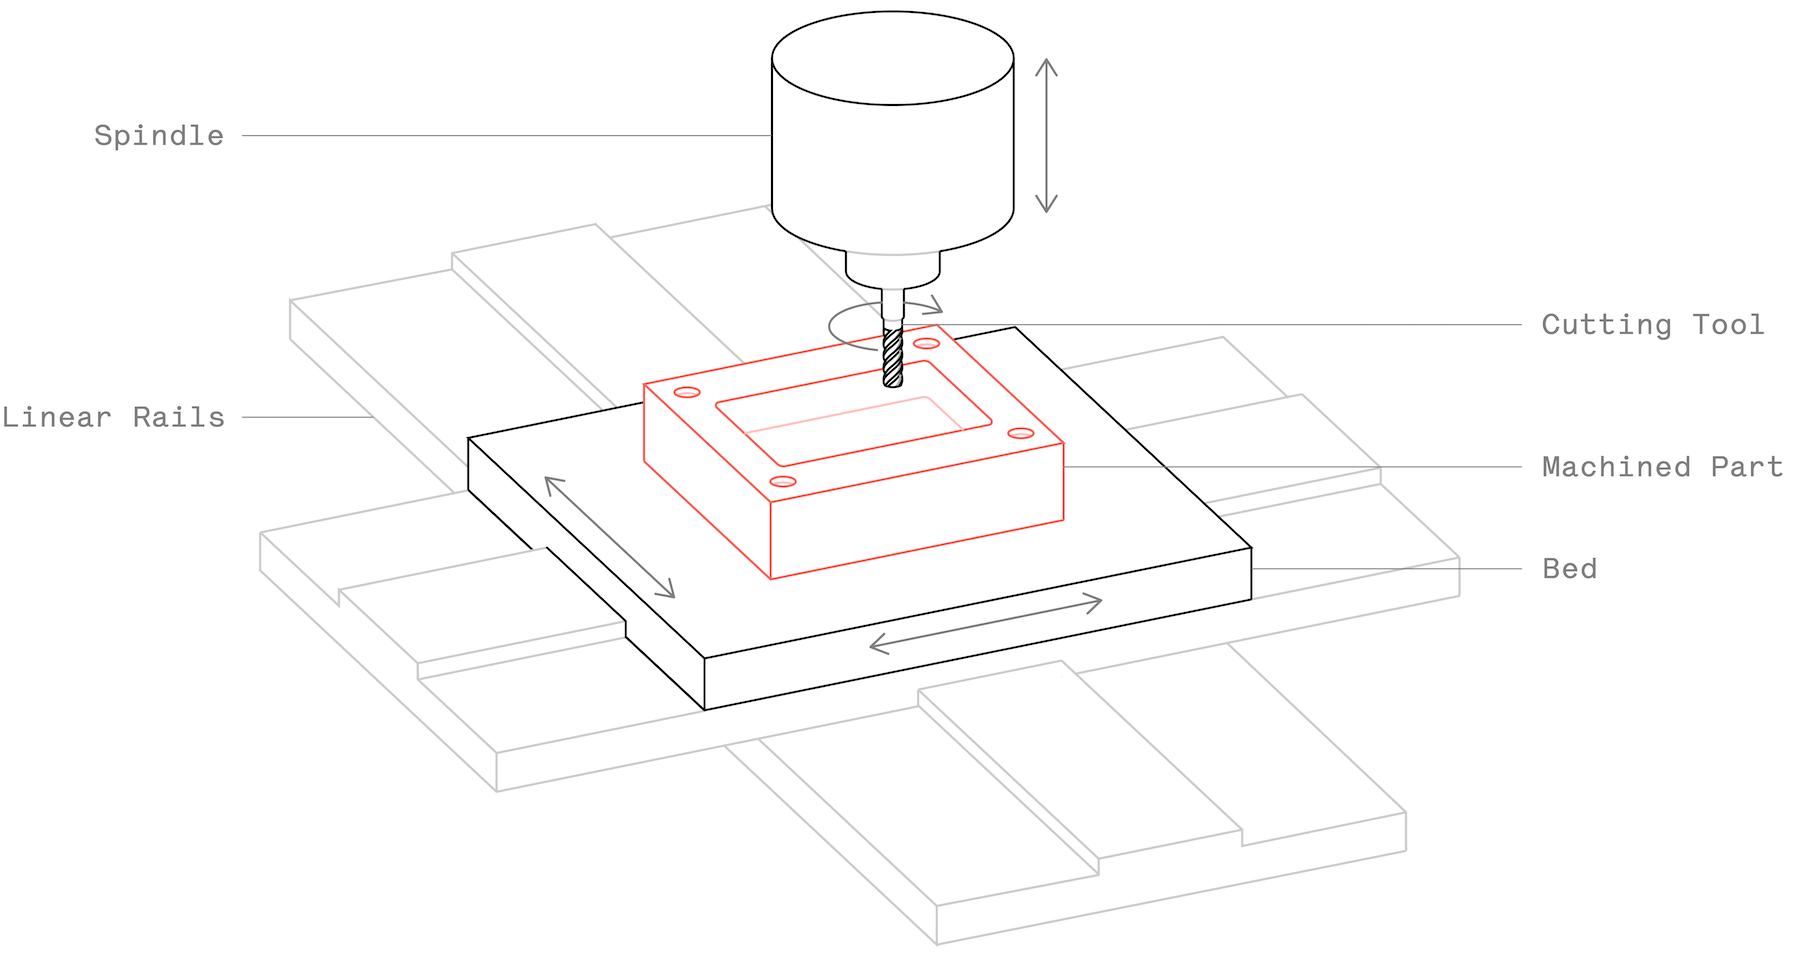 Cnc Milling Machine Drawing   Free download on ClipArtMag